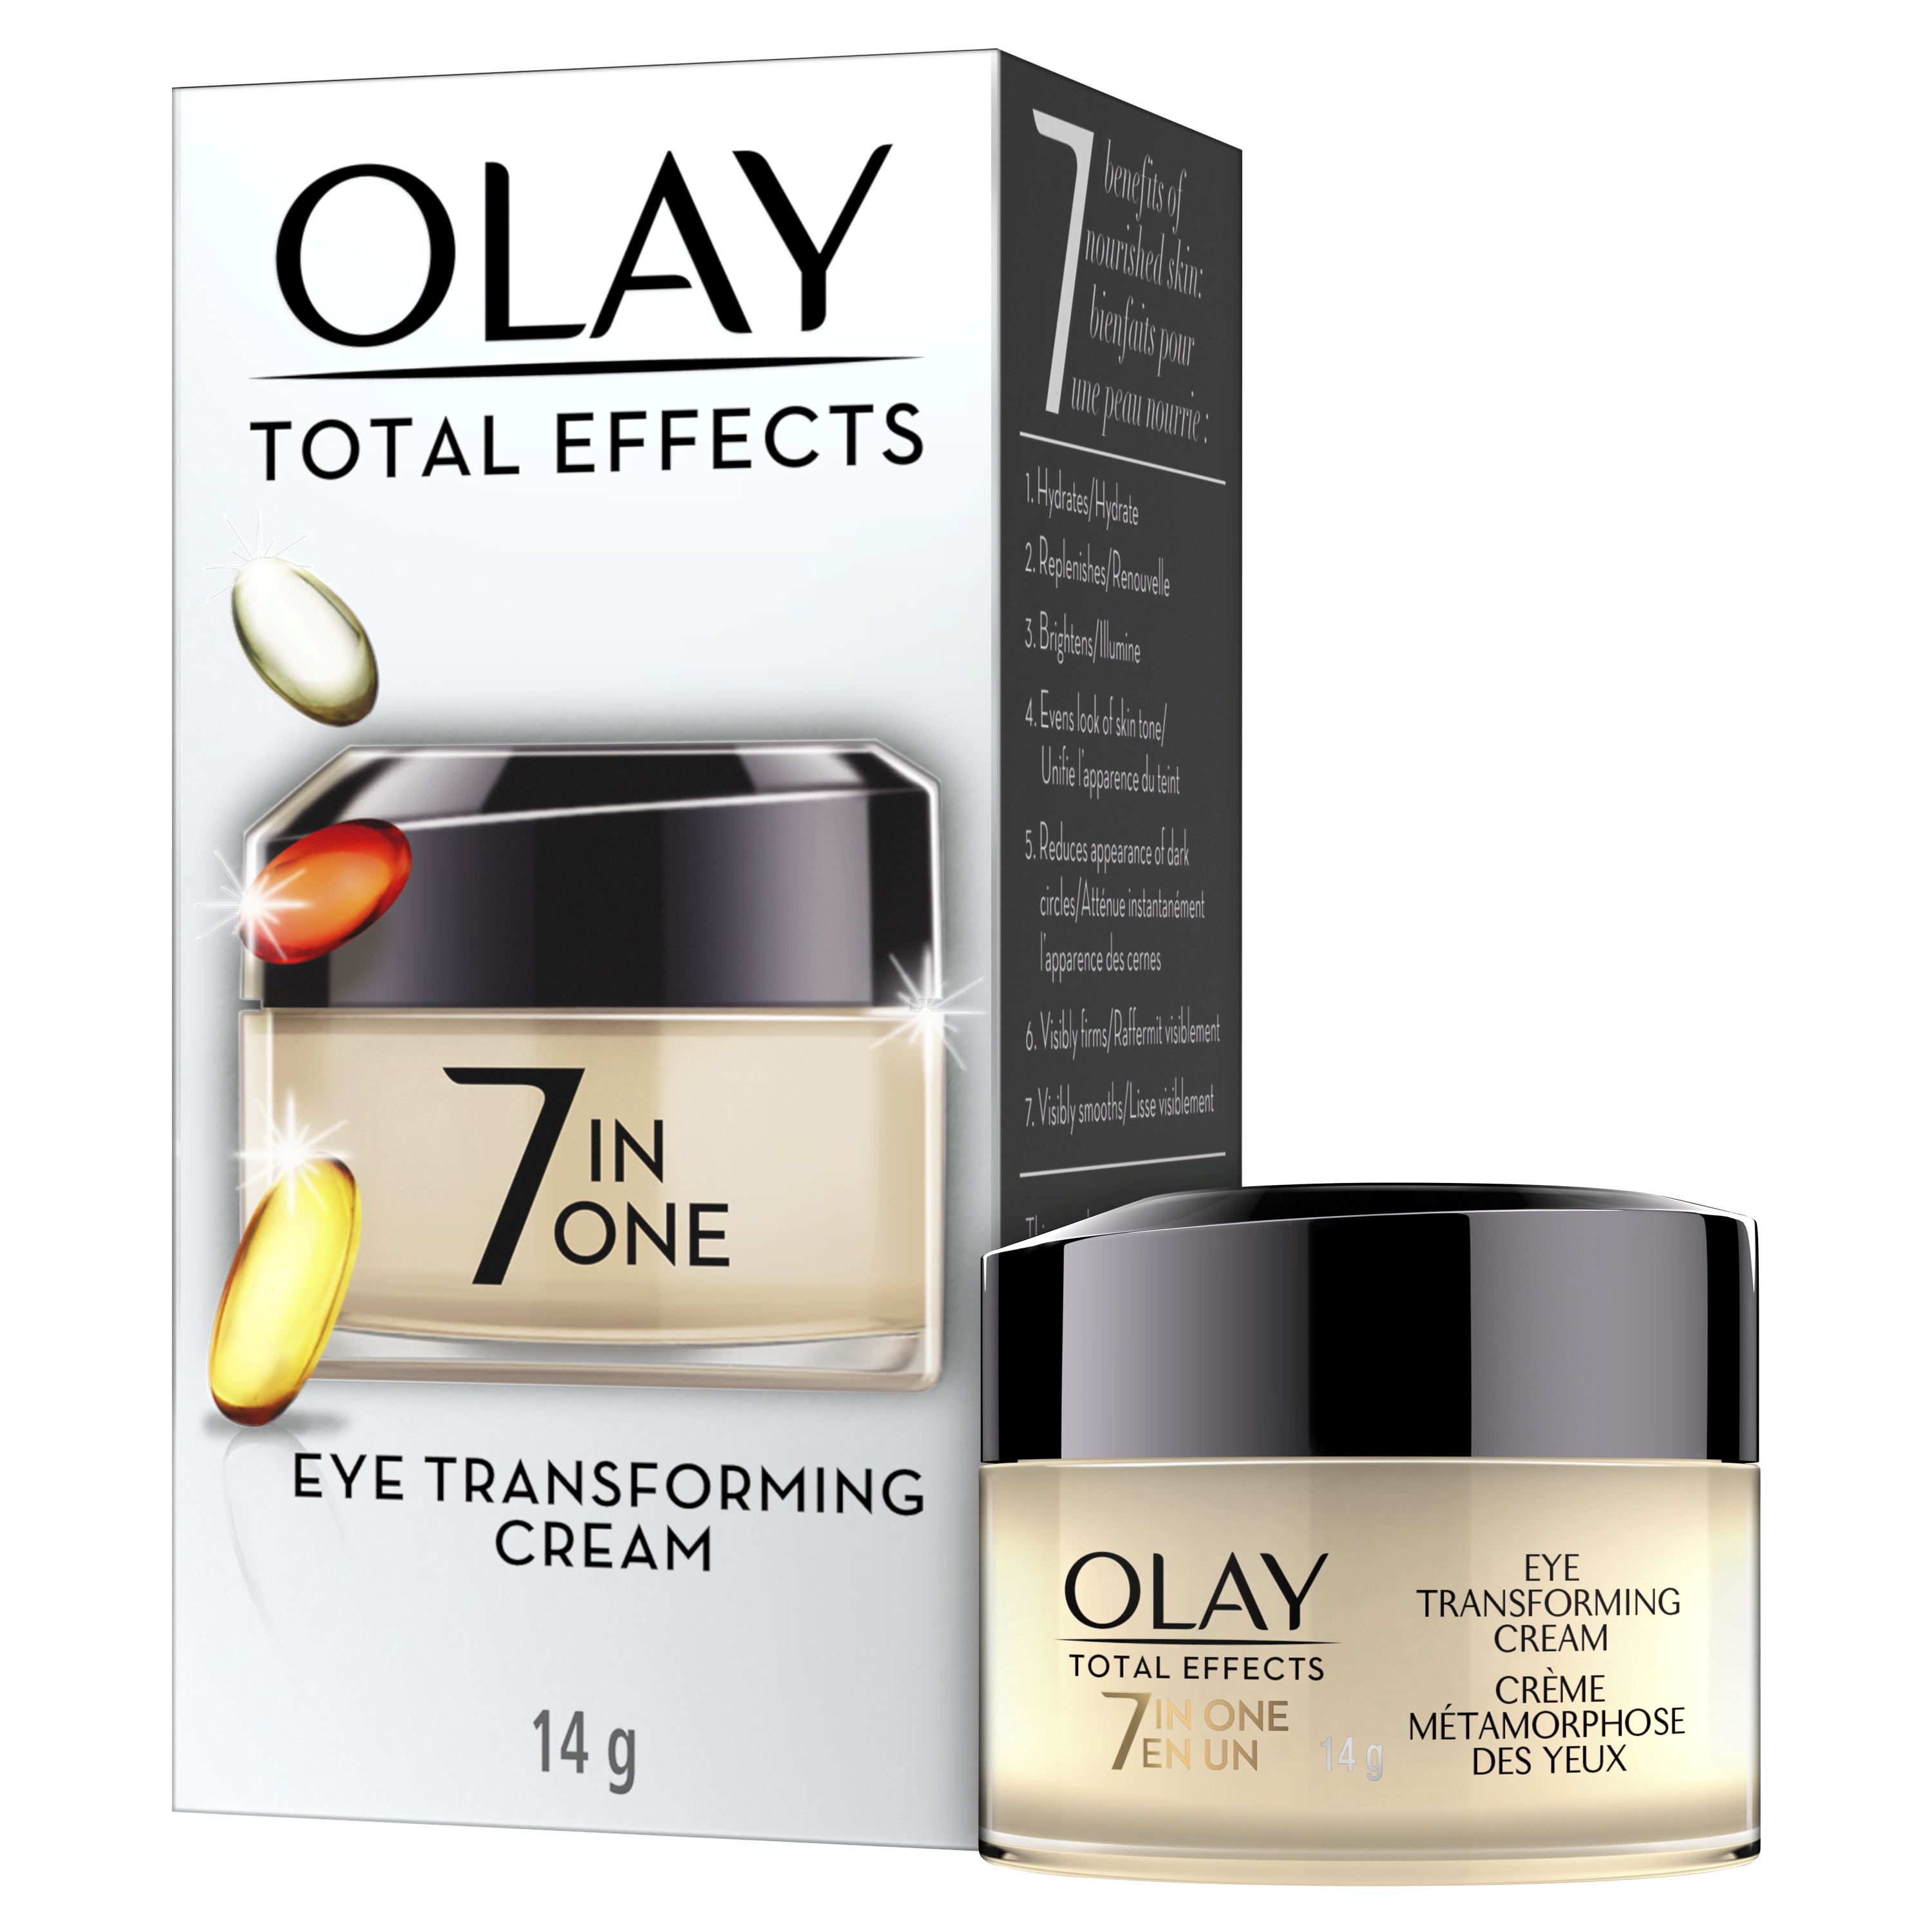 Olay Total Effects Anti Aging Eye Treatment